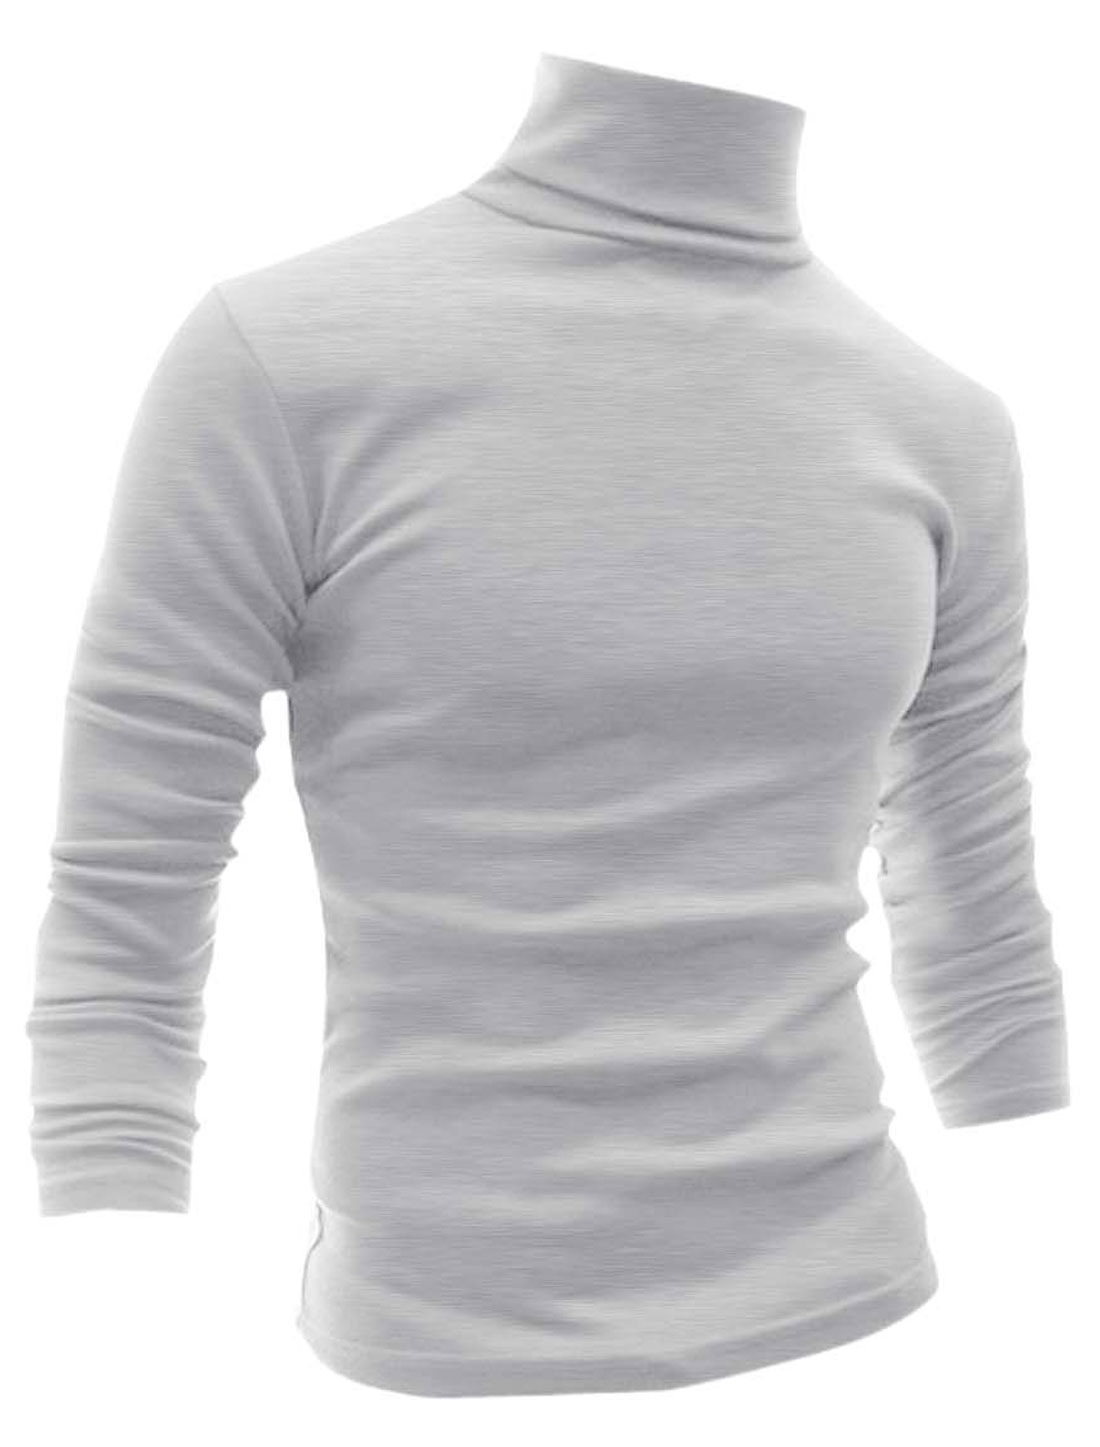 Men Long Sleeves Turtle Neck Slim Fit T-Shirt Light Gray S